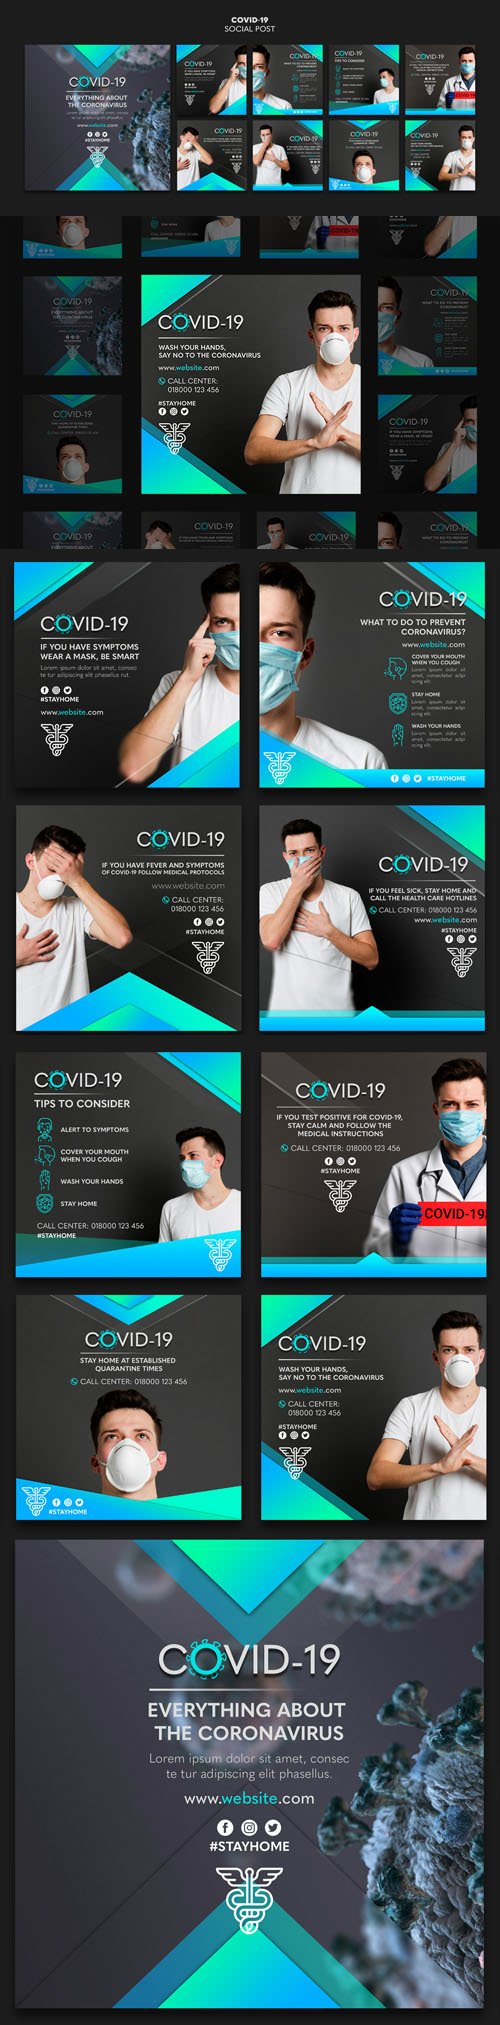 Wearing Masks Fight COVID-19 PSD Templates